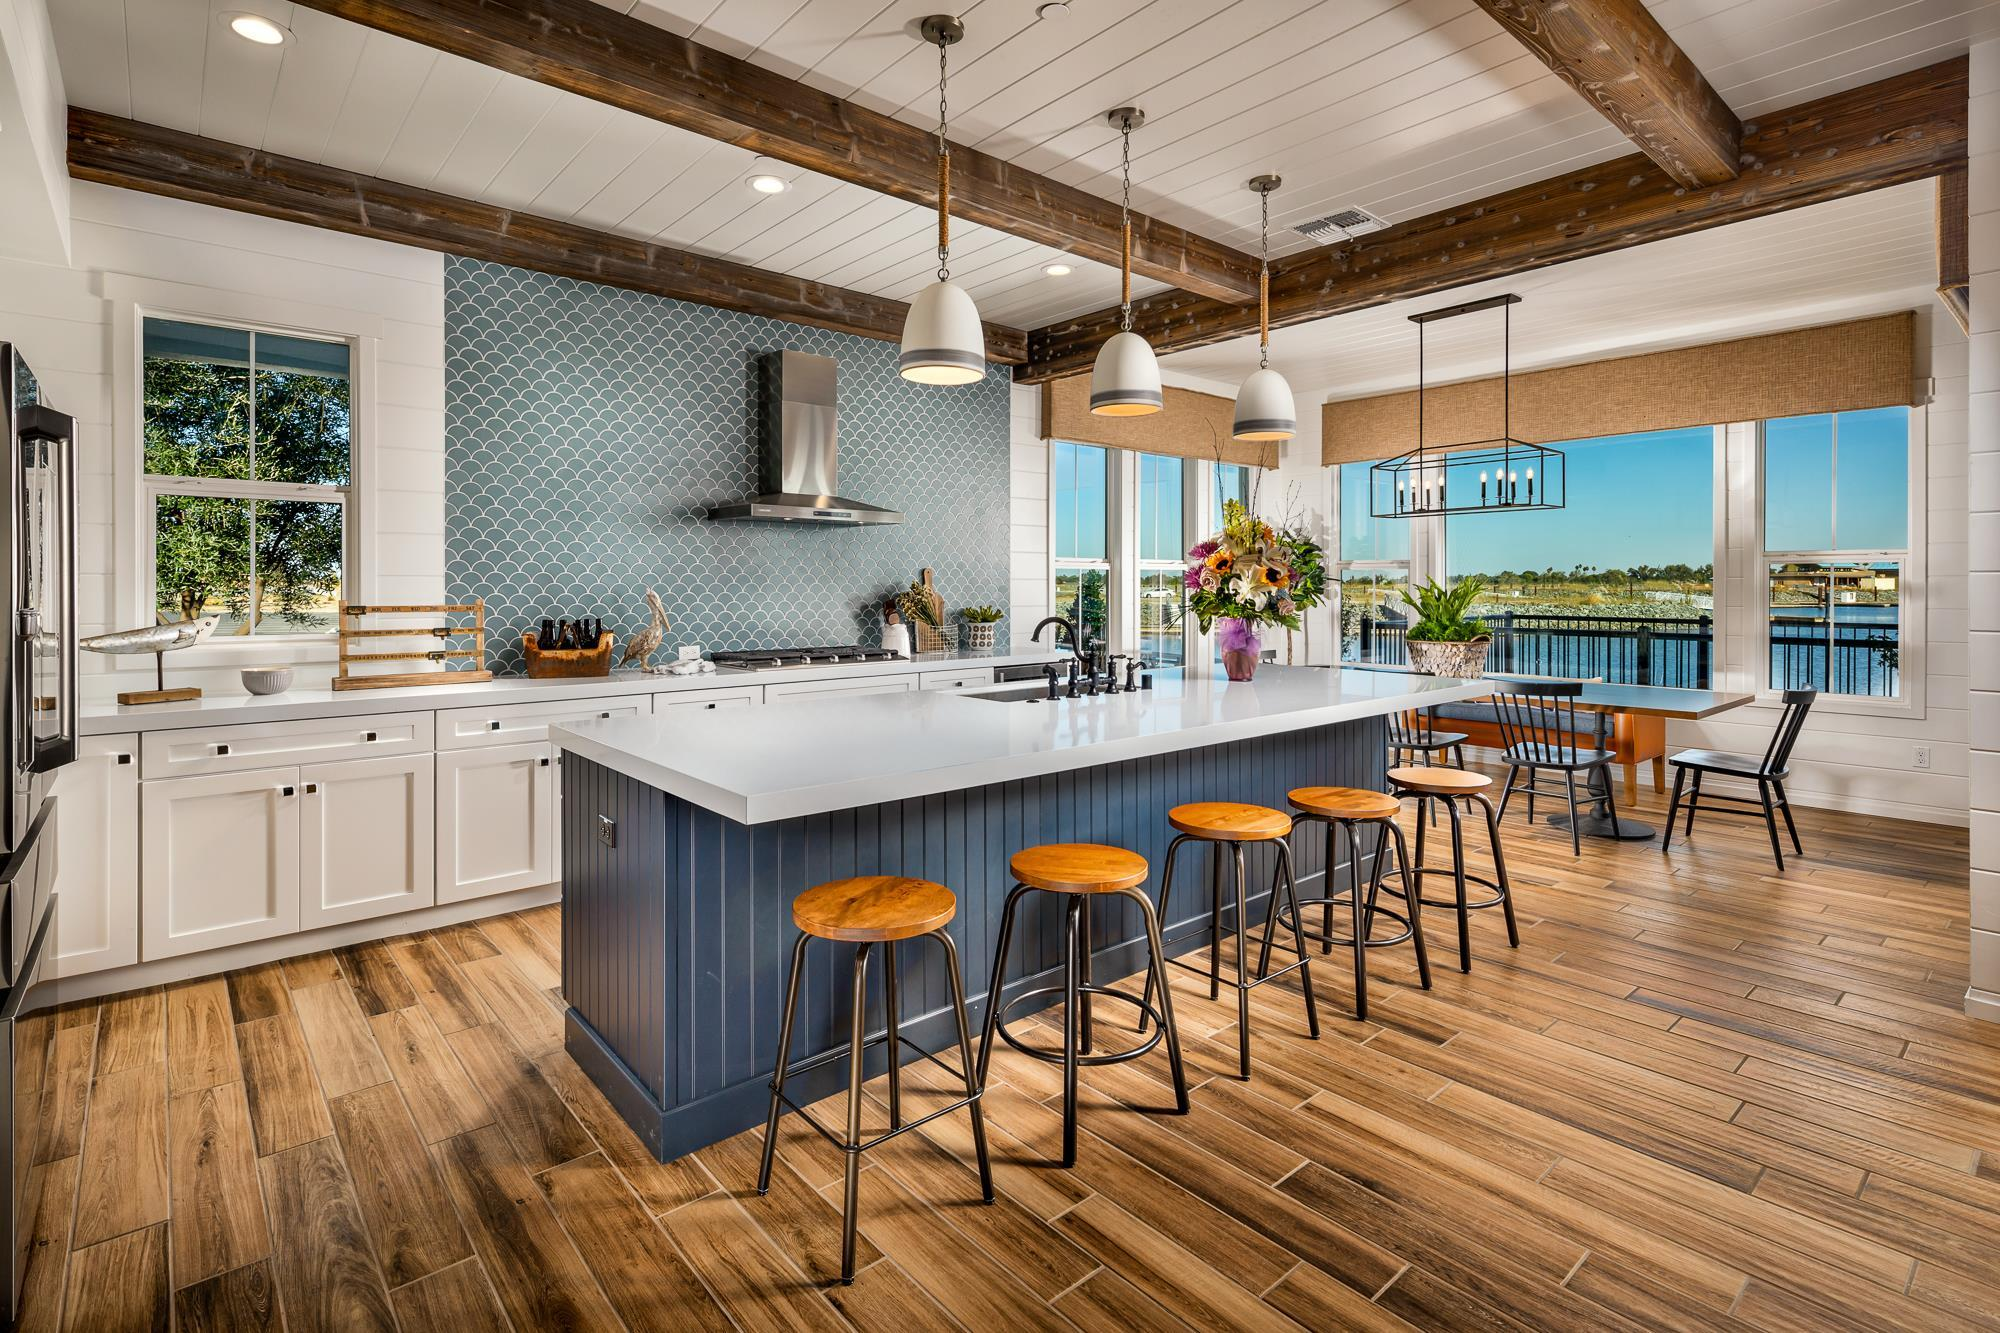 Kitchen featured in The Retreat By Davidson Communities in Oakland-Alameda, CA